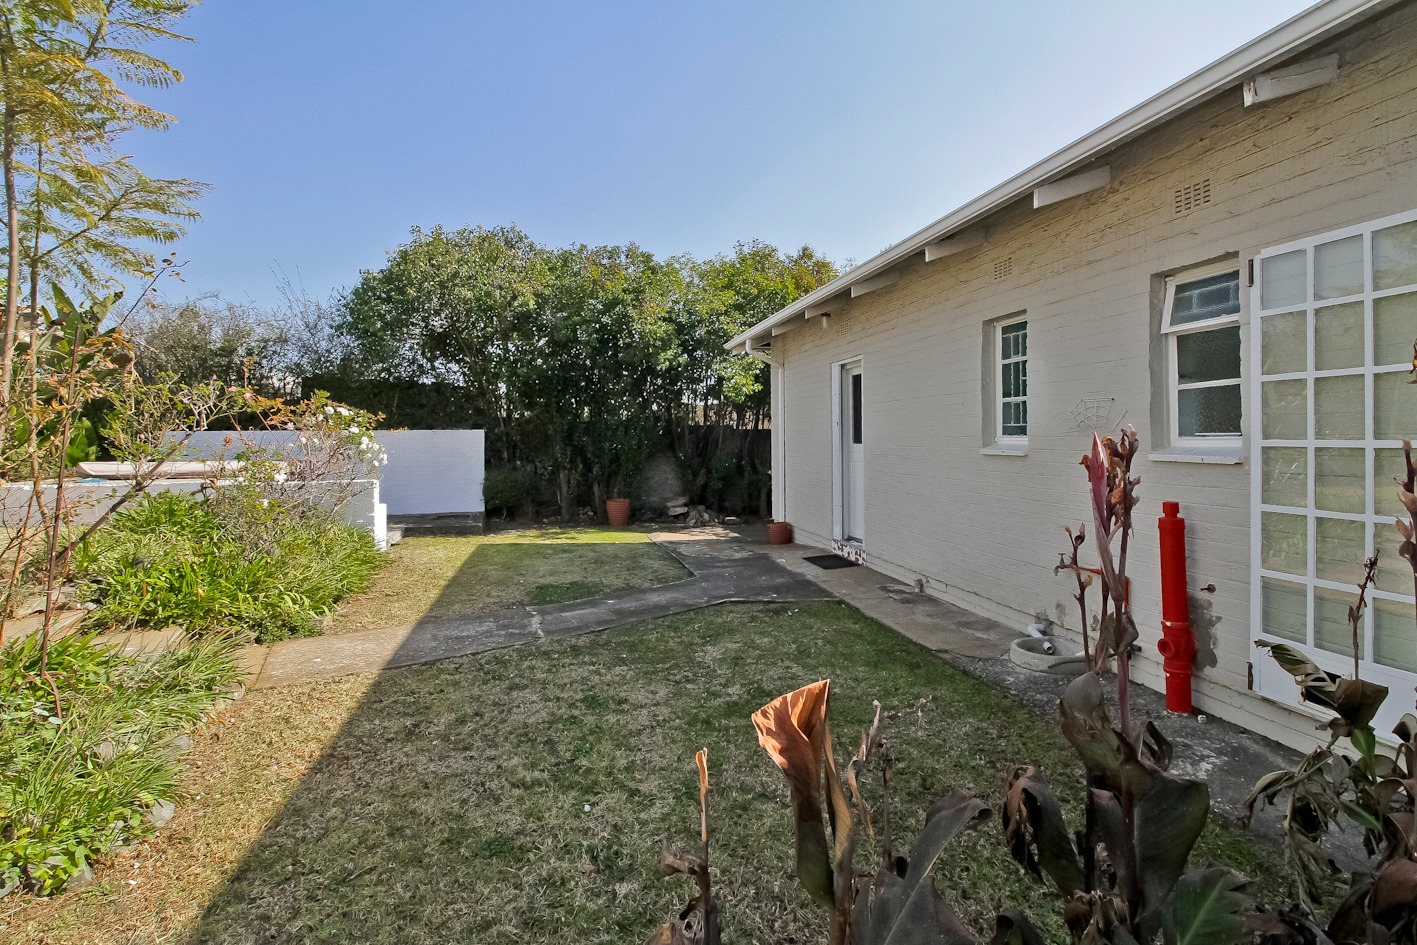 3 Bedroom House For Sale in Lakeside